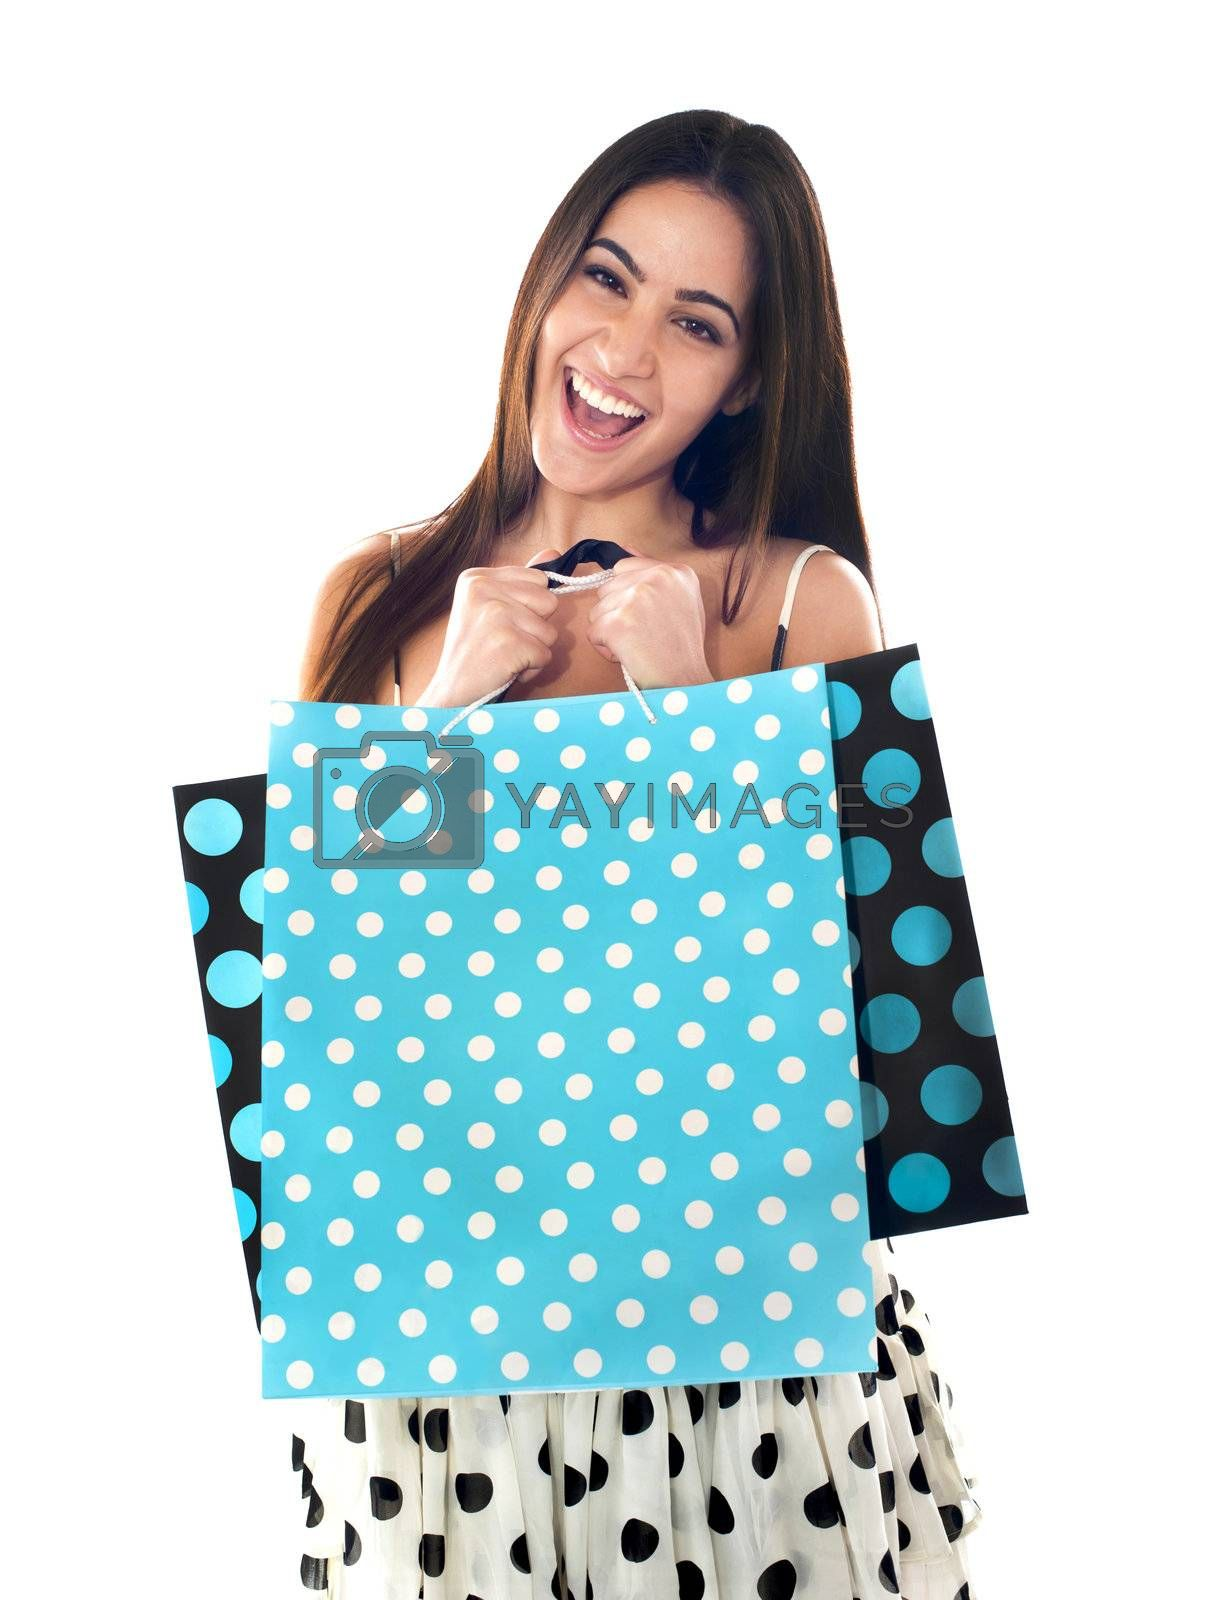 Excited young shopaholic woman holding shopping bags. All on white background